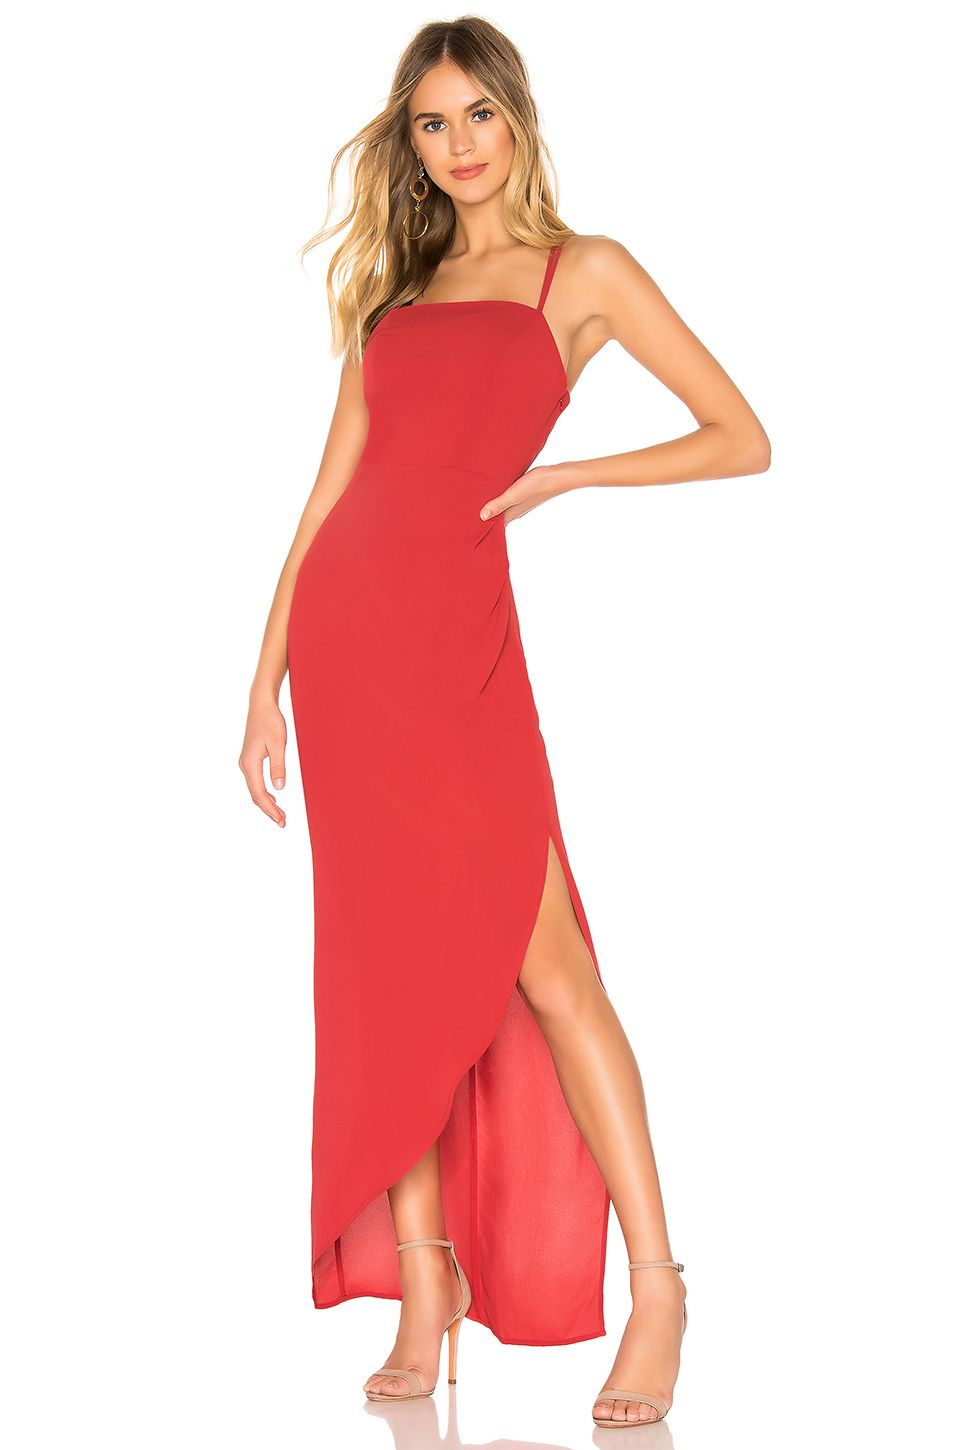 Bcbgeneration Strappy Maxi Dress In American Red From Revolve Com Maxi Dress Strappy Maxi Dress Womens Maxi Dresses [ 1450 x 960 Pixel ]